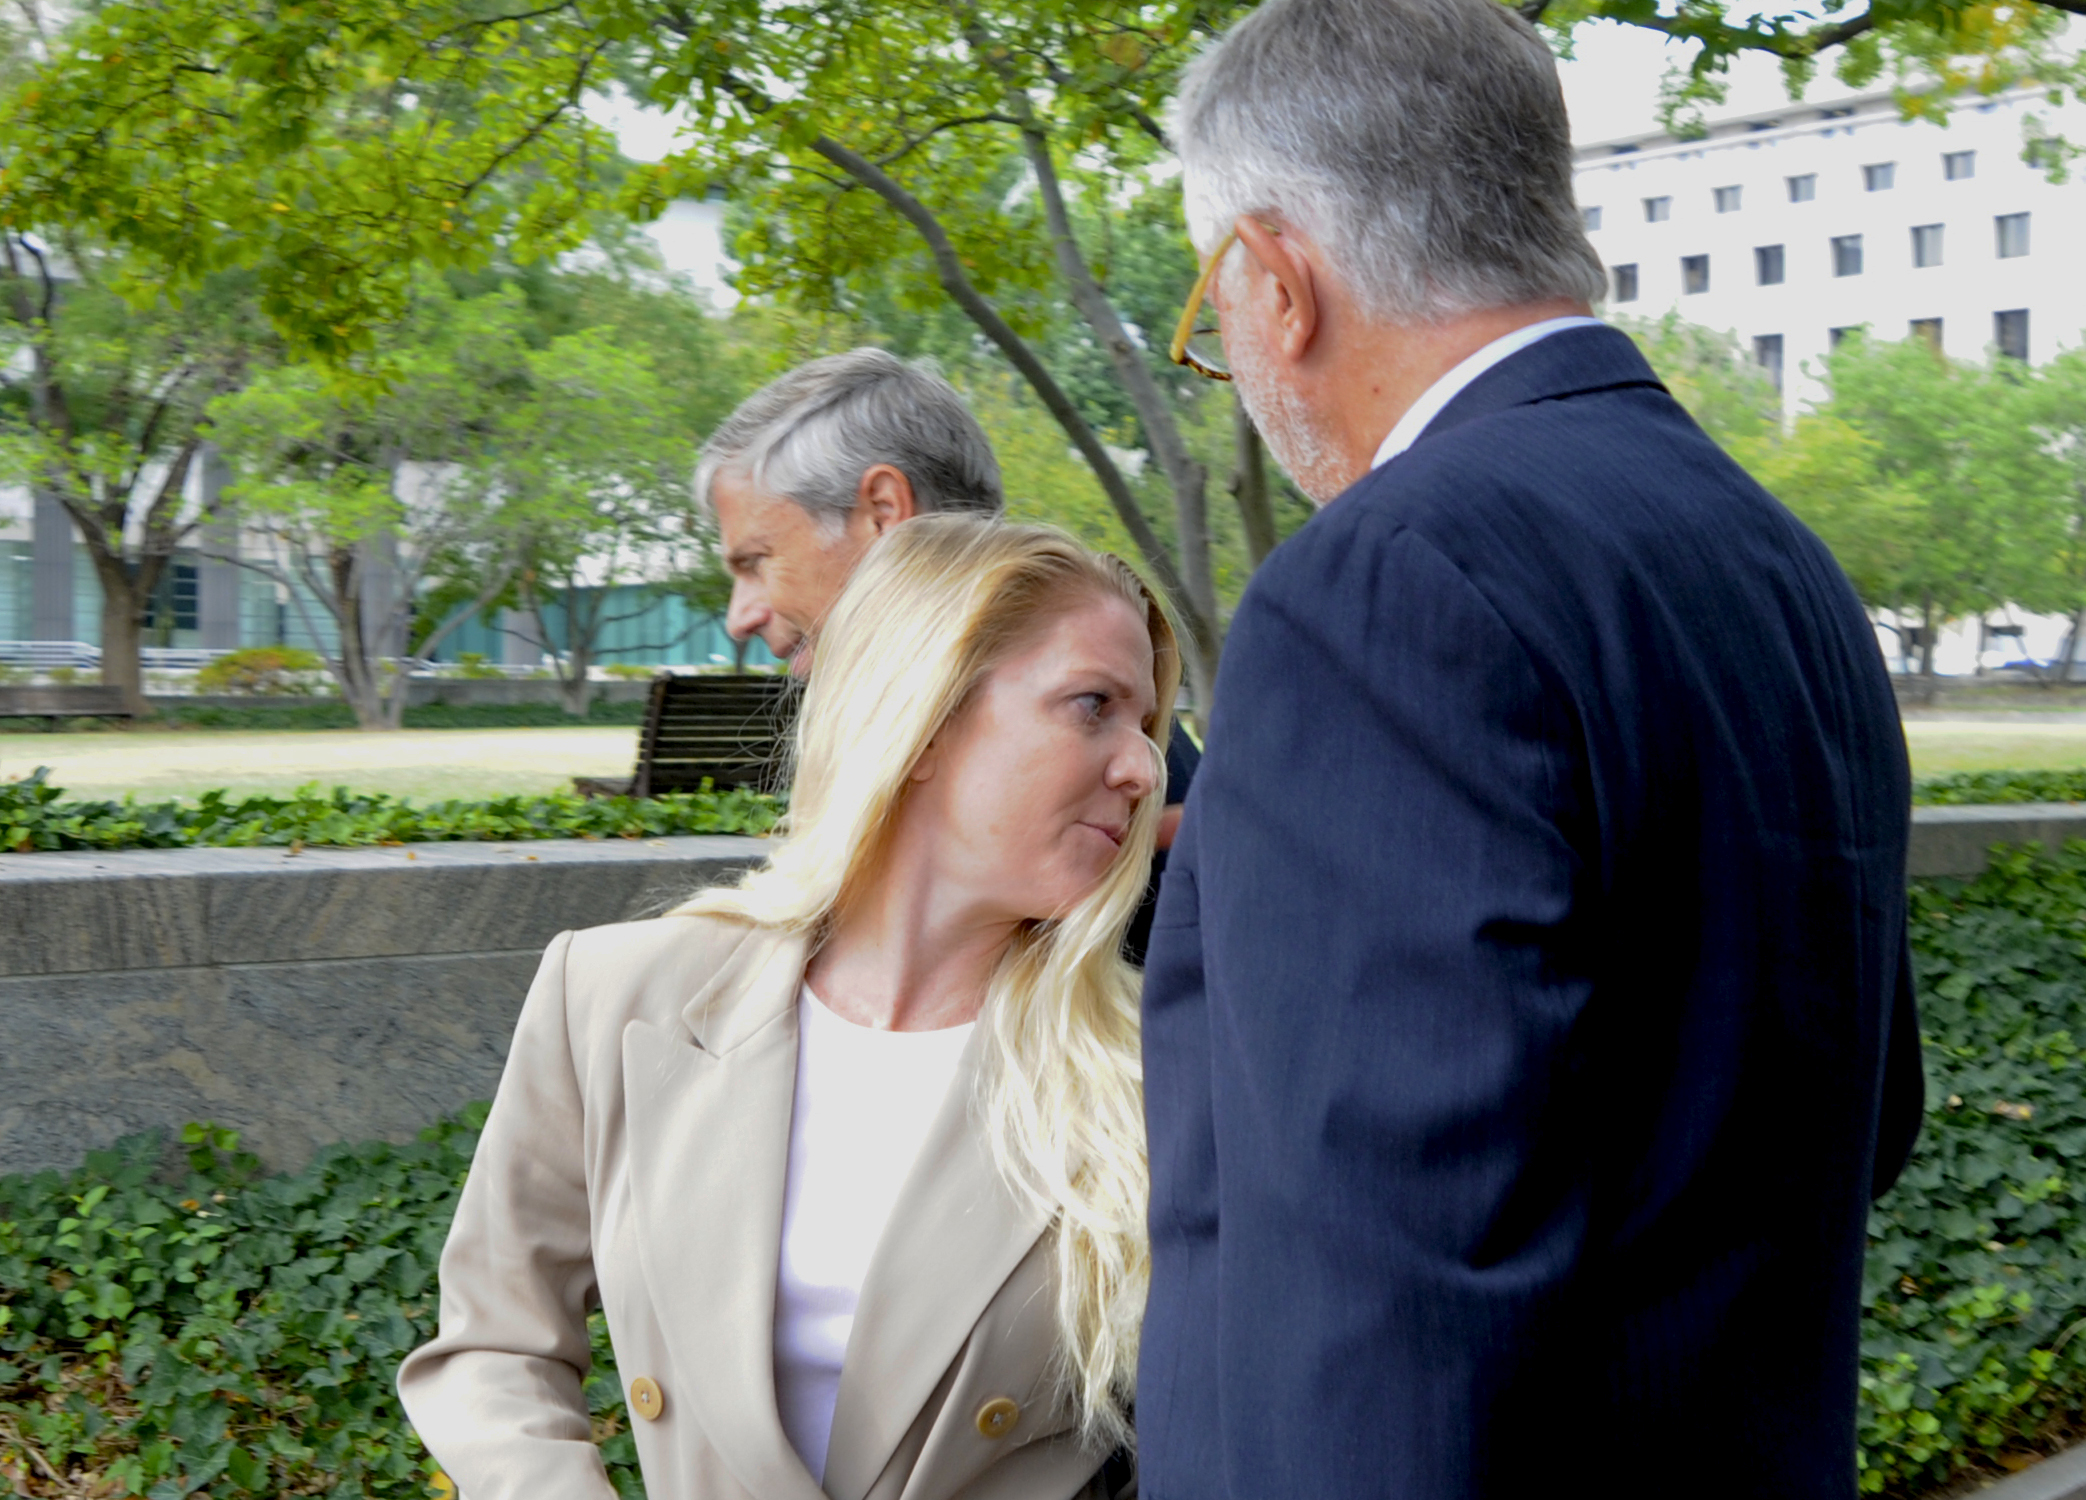 Patricia Driscoll Pleads 'Not Guilty' on All Counts of Federal Indictment